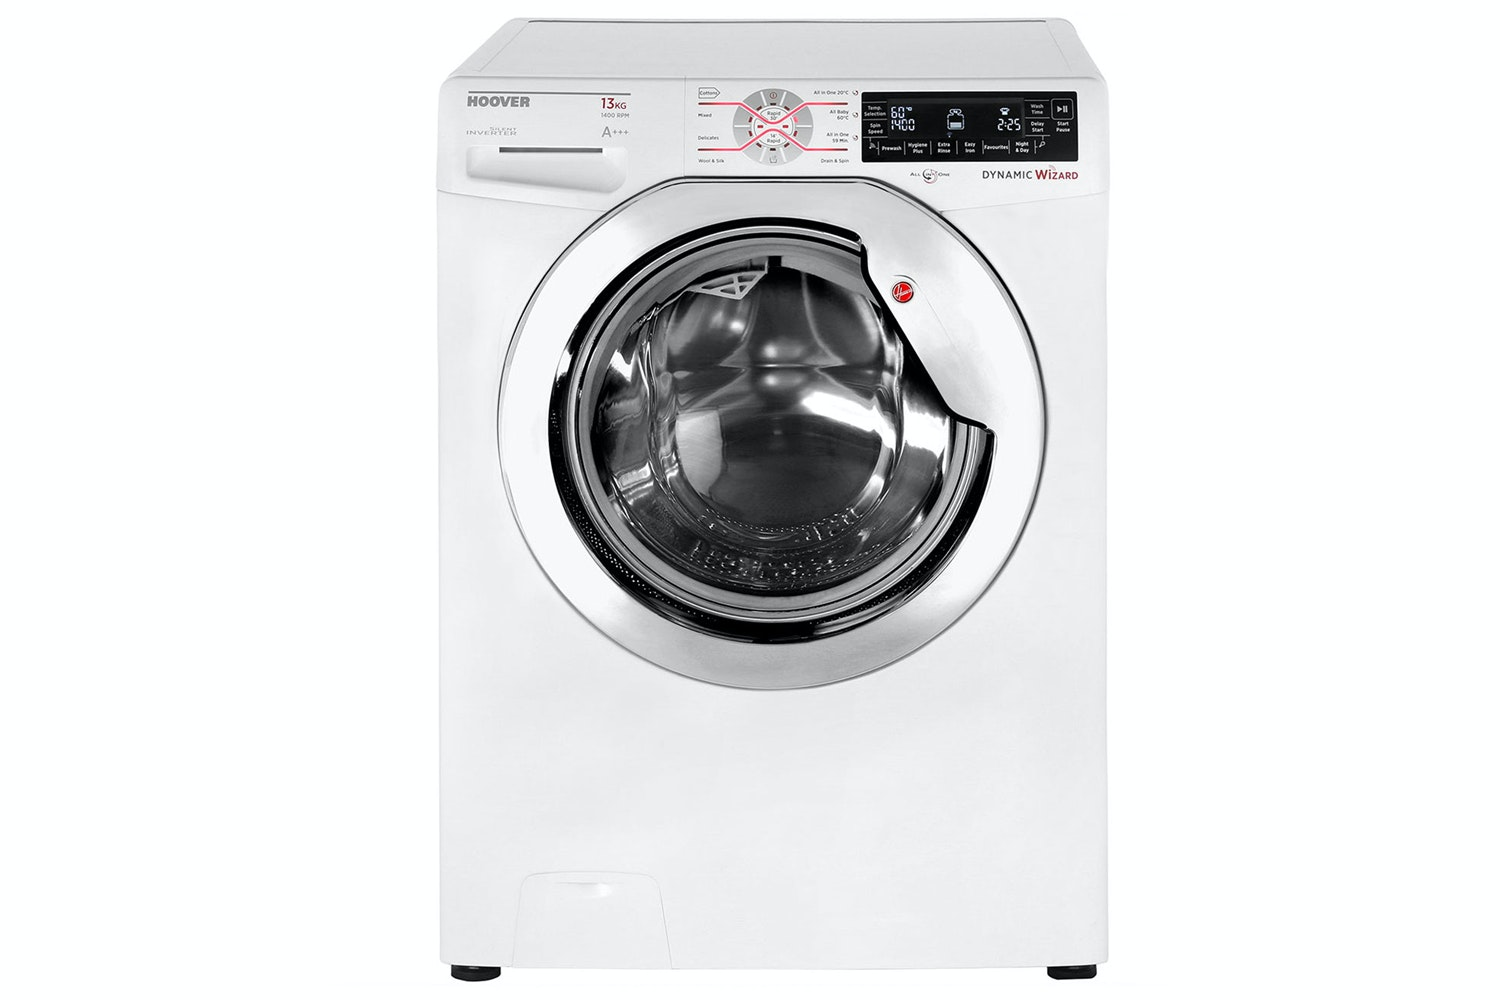 Hoover 13kg All in One Washing Machine | DWTSS134AIW3